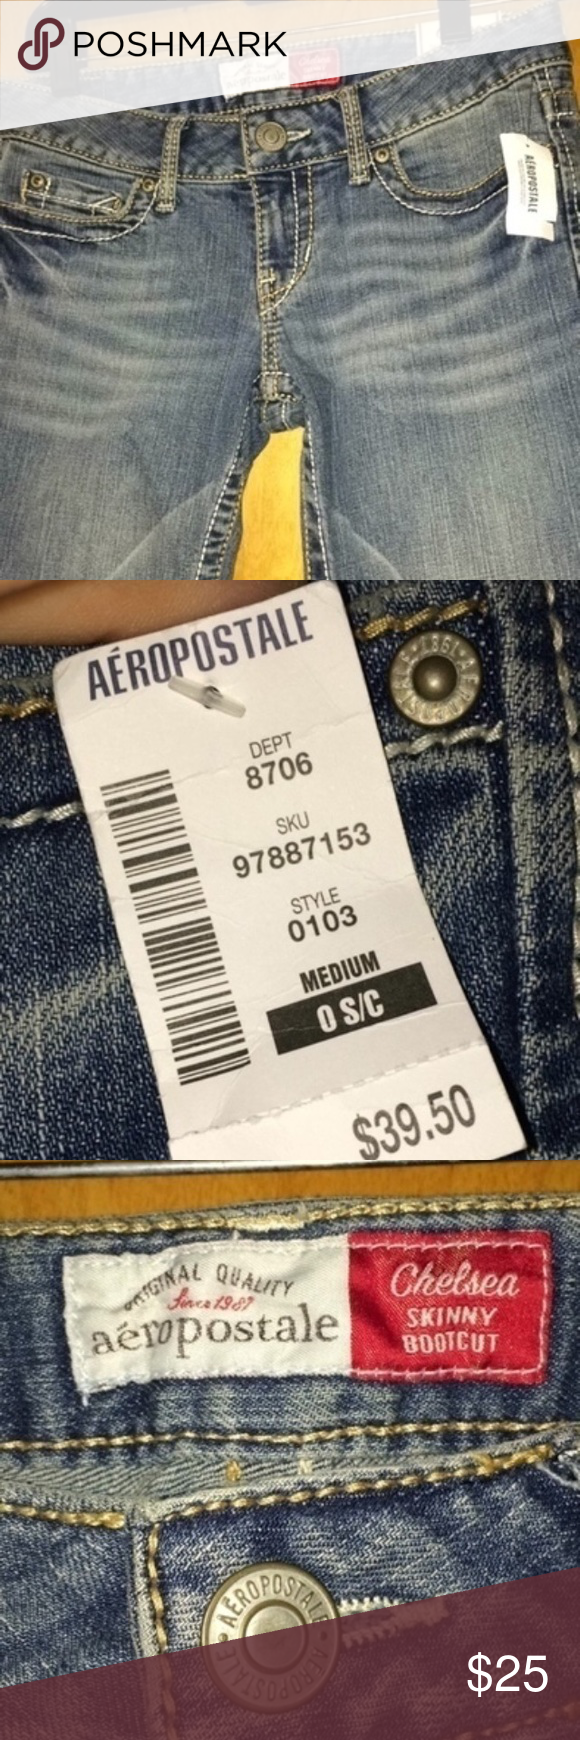 NWT Aeropostale Jeans-size 0! New with tags Aeropostale jeans! Size 0 short! They are Chelsea fit, skinny Bootcut.  No flaws! Originally $39.50!  #nwt #newwithtags #aeropostale #chelseafit #noflaws #bootcut #bootcutjeans #skinnyjeans #noflaws #smokefreeandpetfreehome Aeropostale Jeans Boot Cut